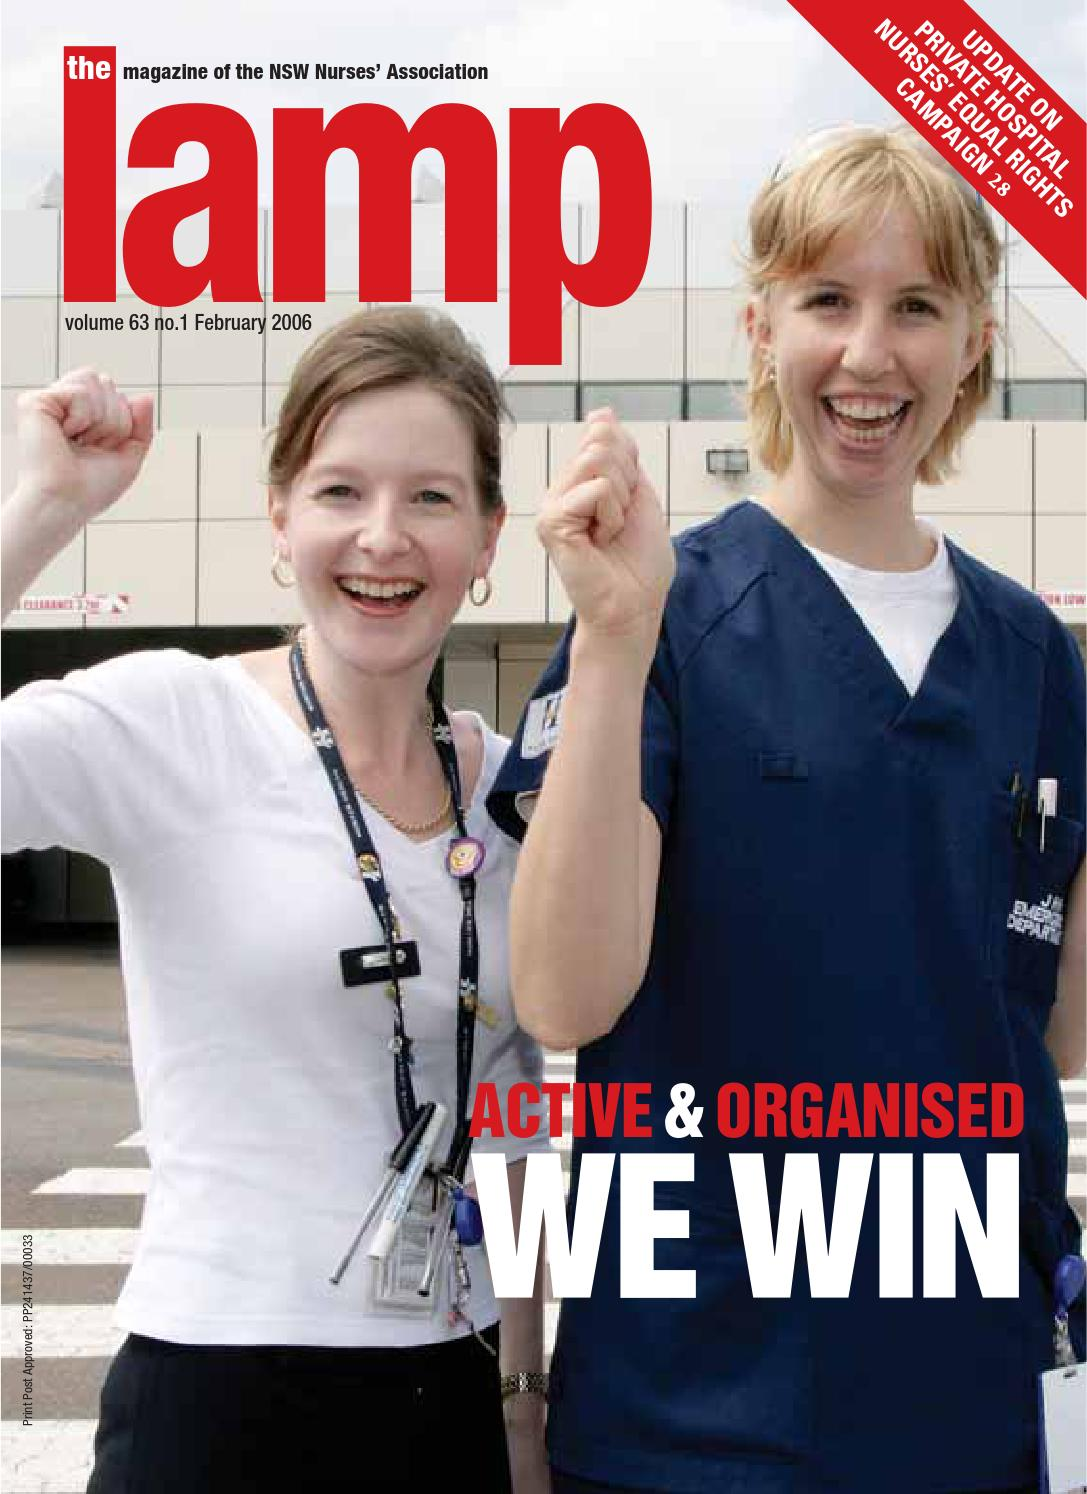 The Lamp February 2006 By Nsw Nurses And Midwives Association Issuu Suggest A Topic To Publish 038 Win 8gb Pen Drive